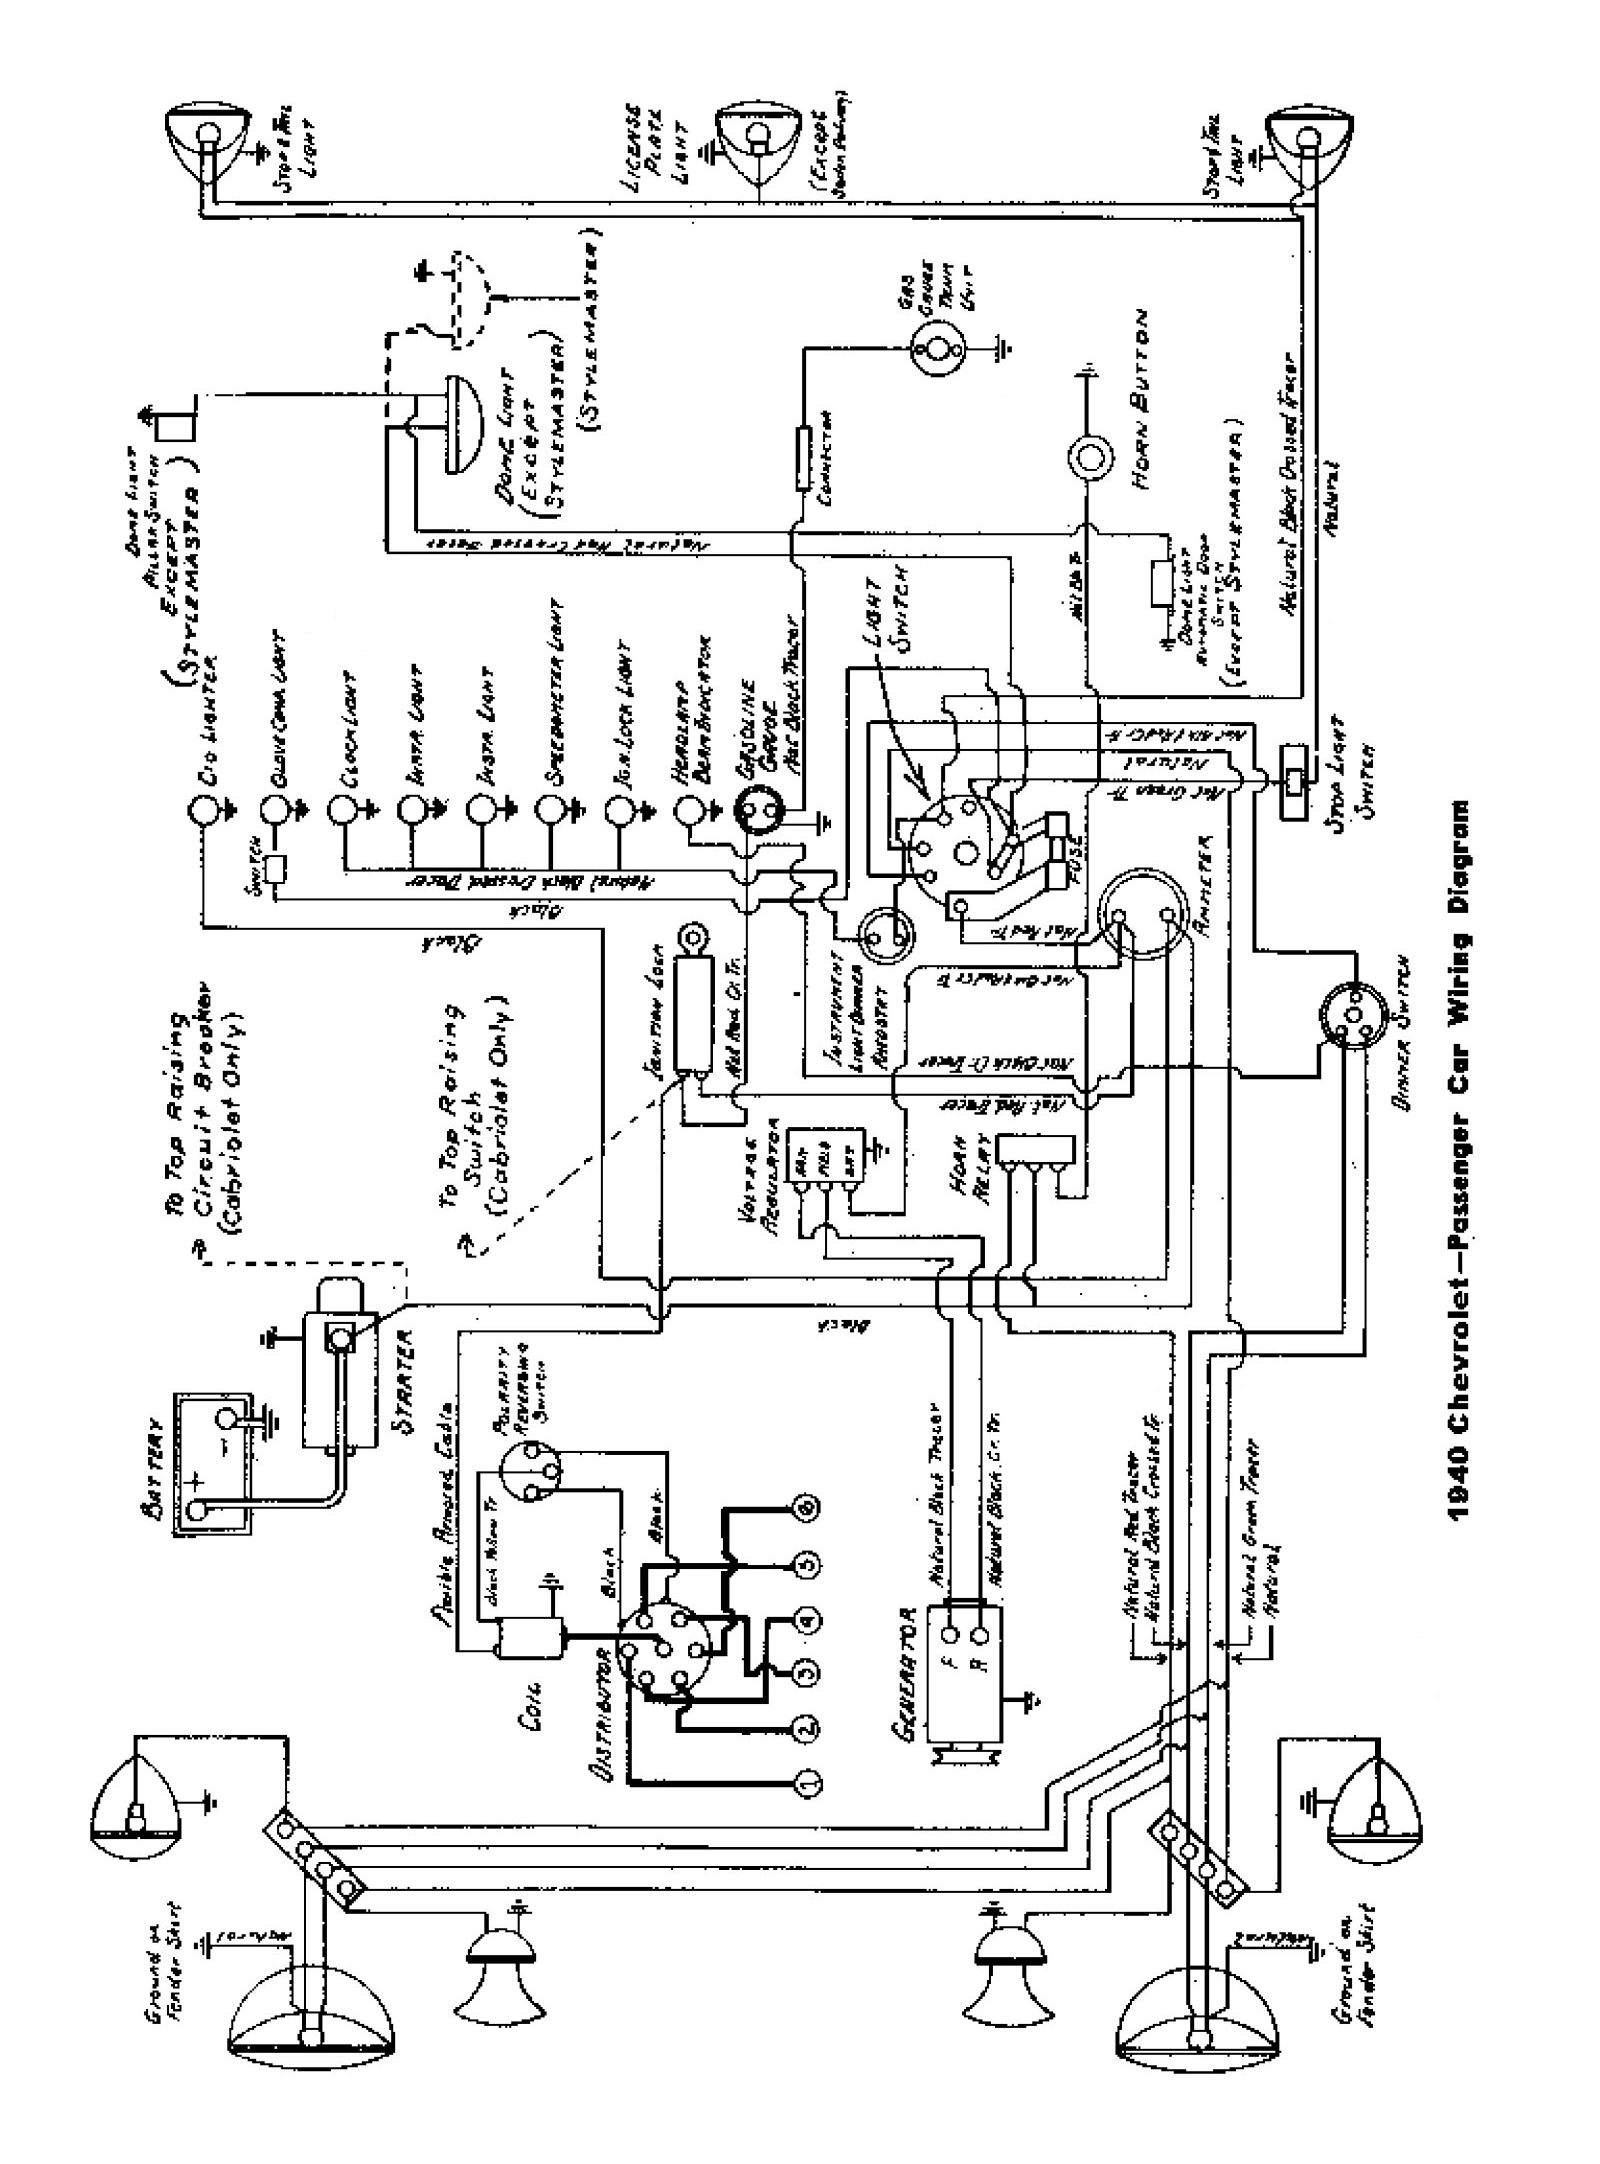 40car ford maverick diagram on wiring diagram